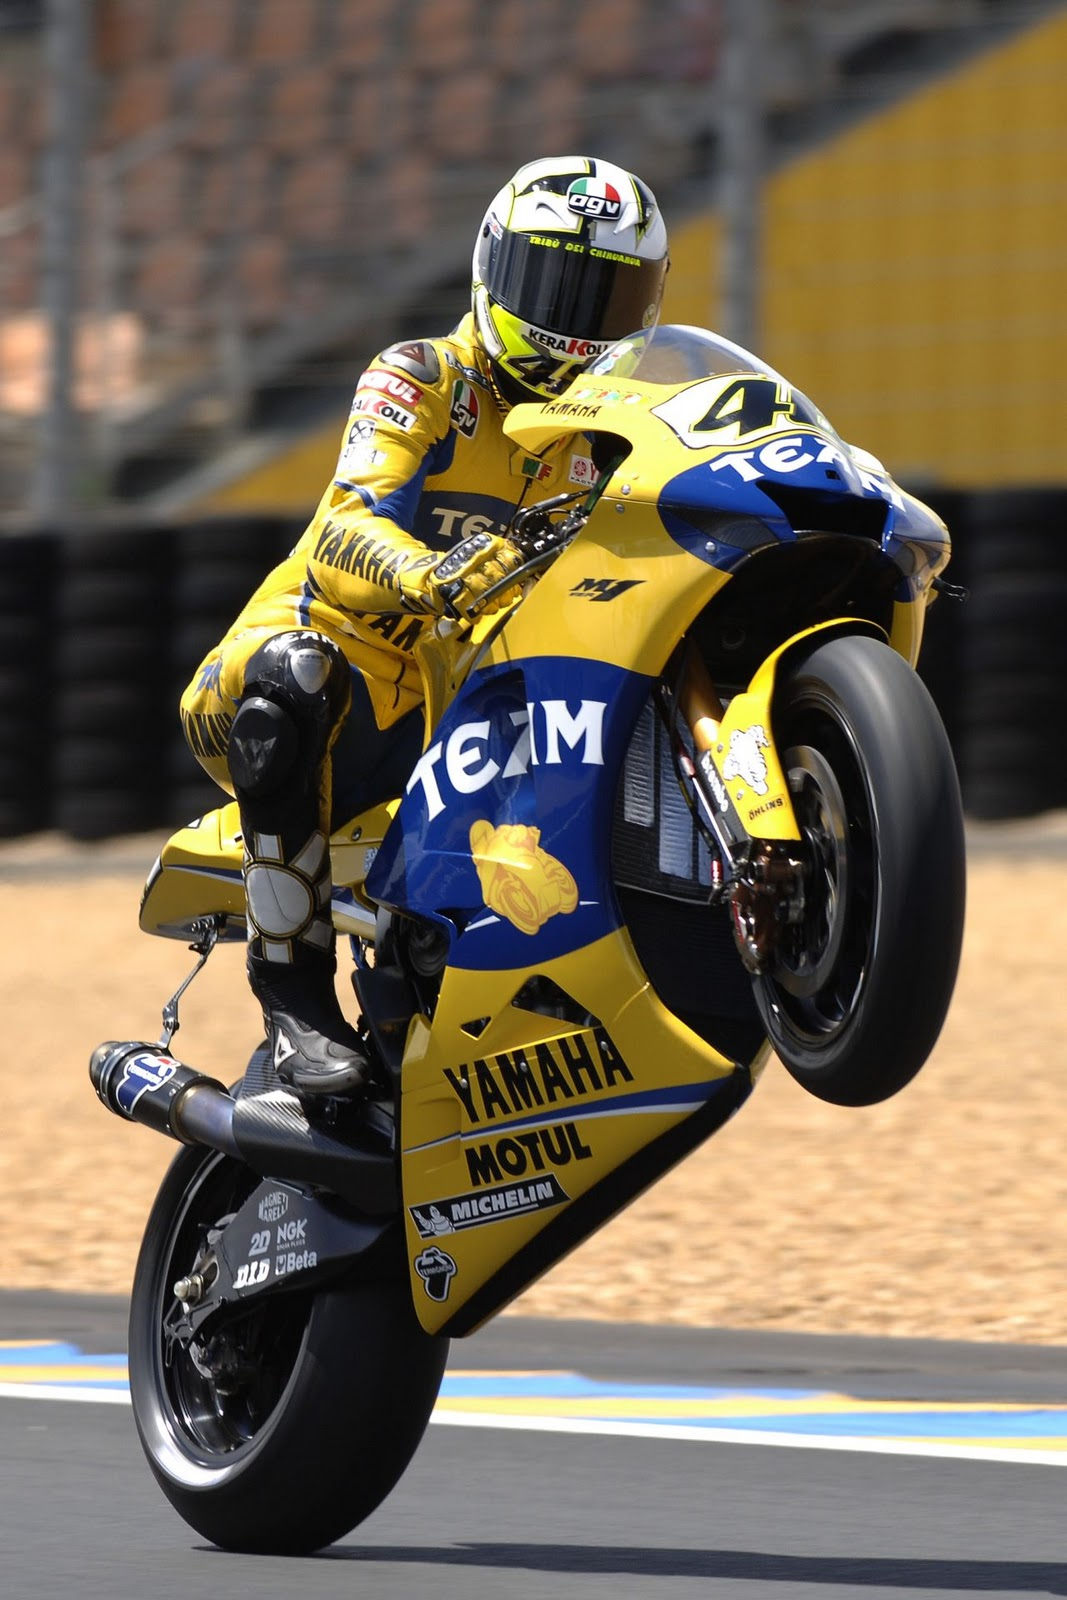 valentino rossi ndash wheelie - photo #13